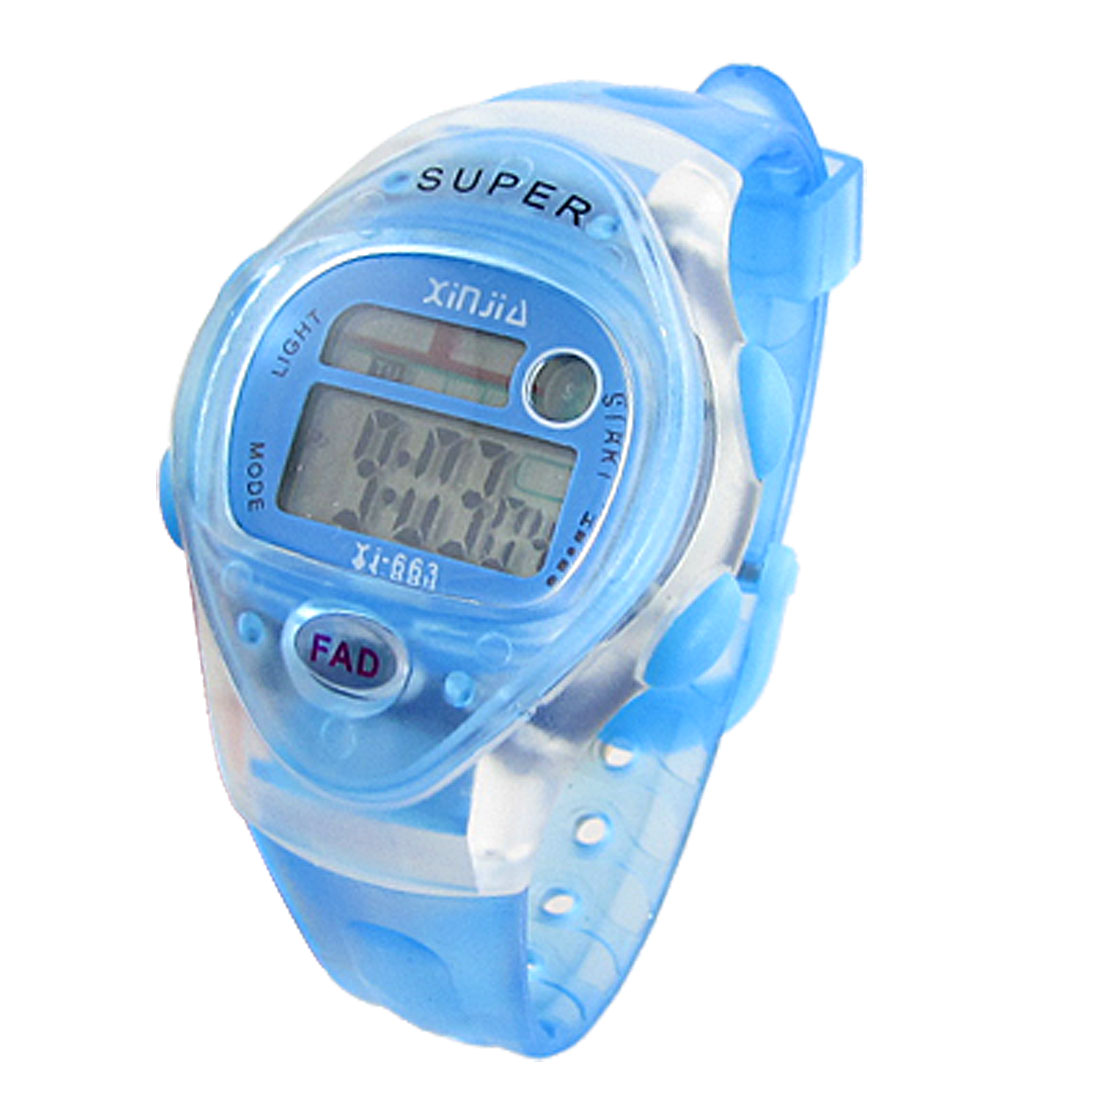 Clear Blue Soft Plastic Band Backlight Digital Sports Watch